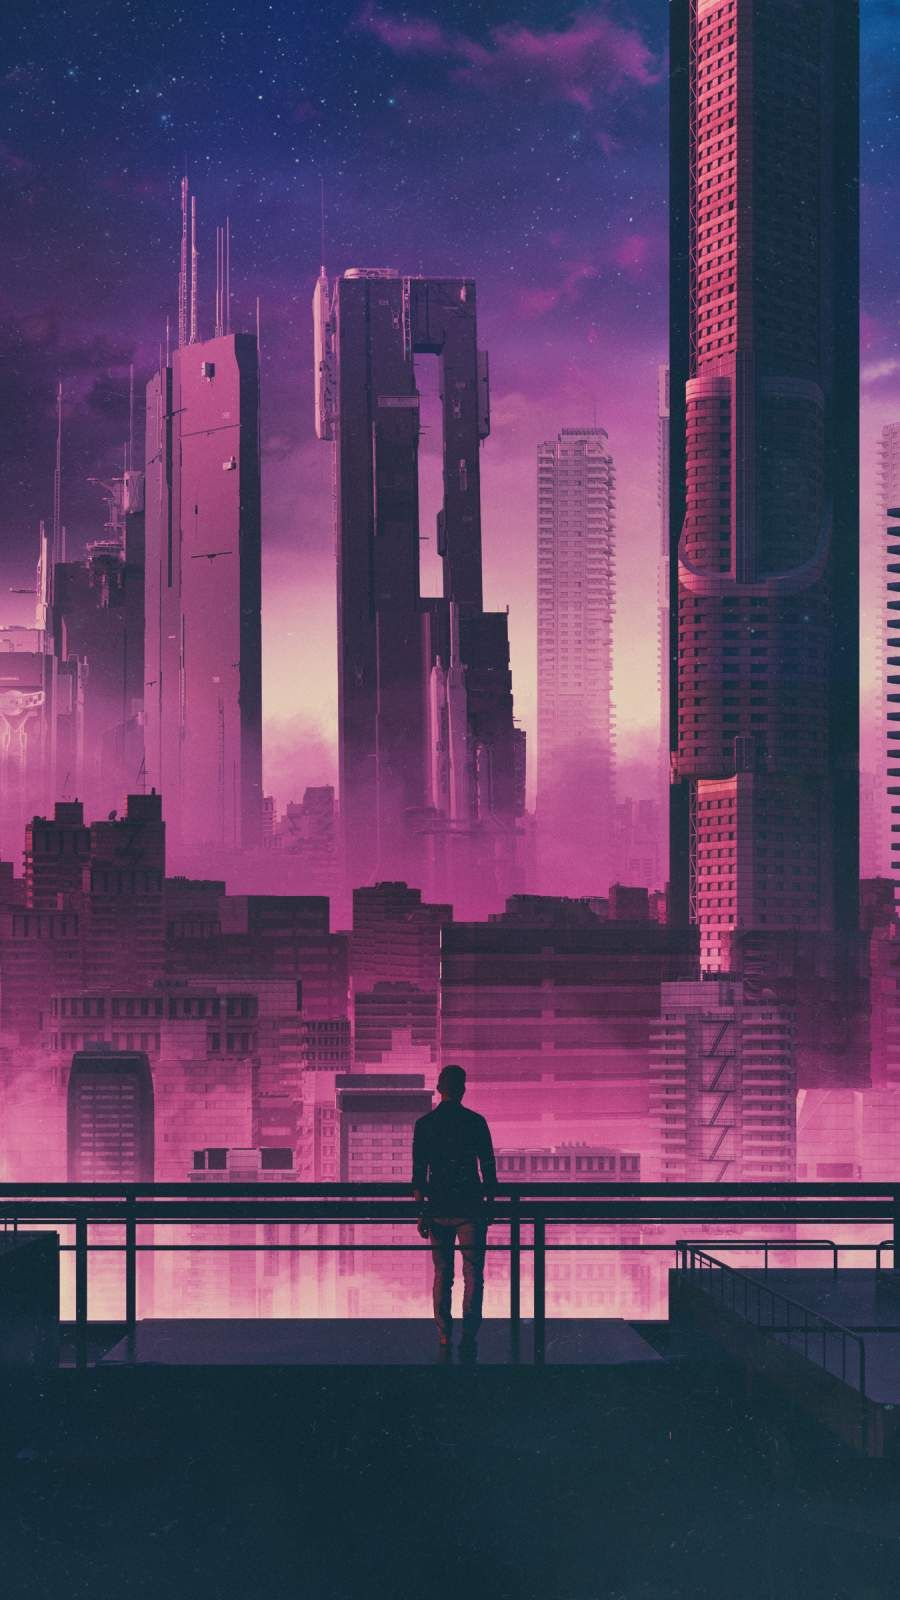 Future City And Man Iphone Wallpaper City Painting Abstract City City Art